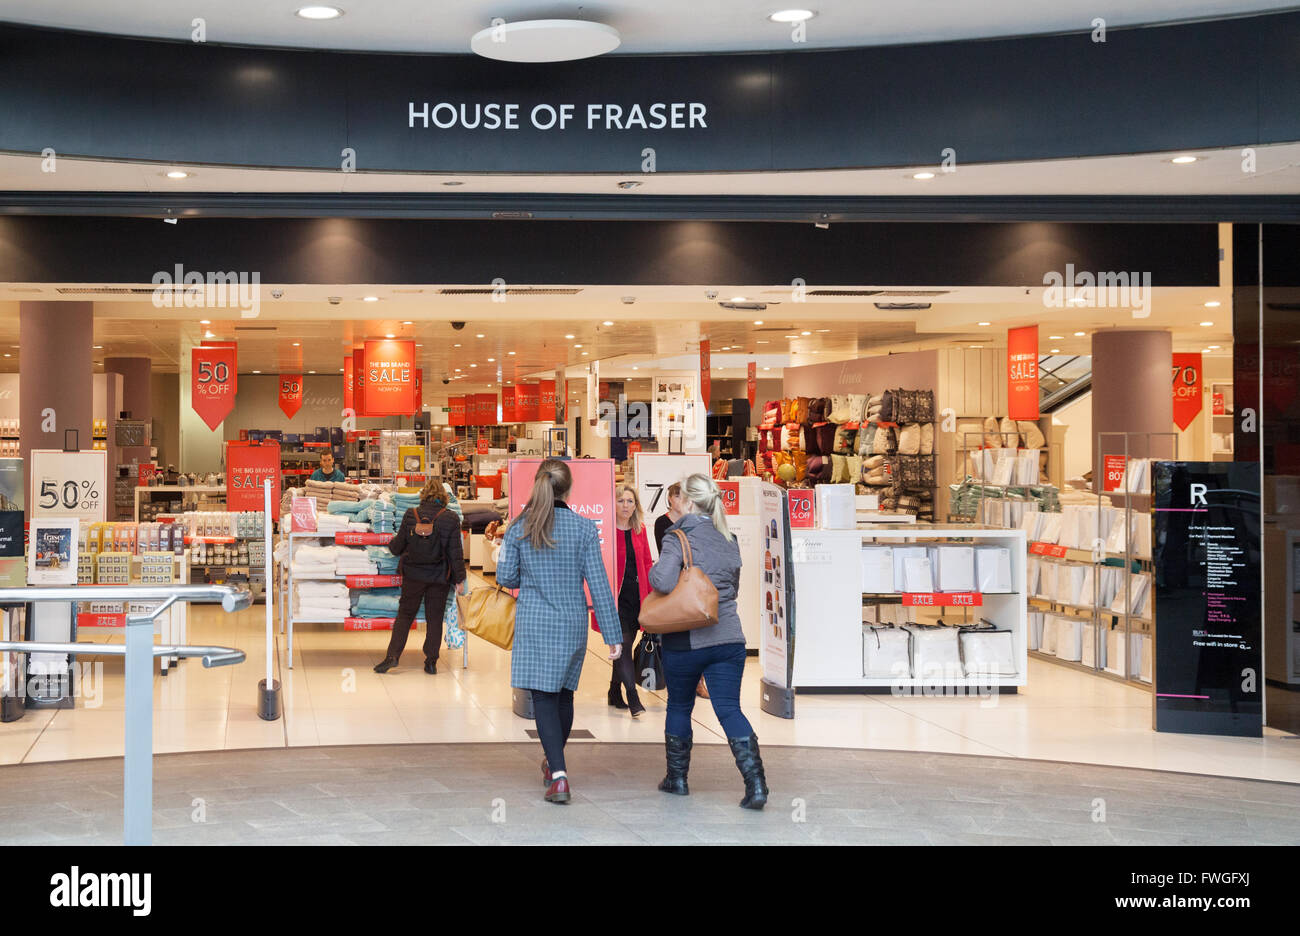 Shoppers entering the House of Fraser store, The Oracle Shopping Centre, Reading, Berkshire UK - Stock Image